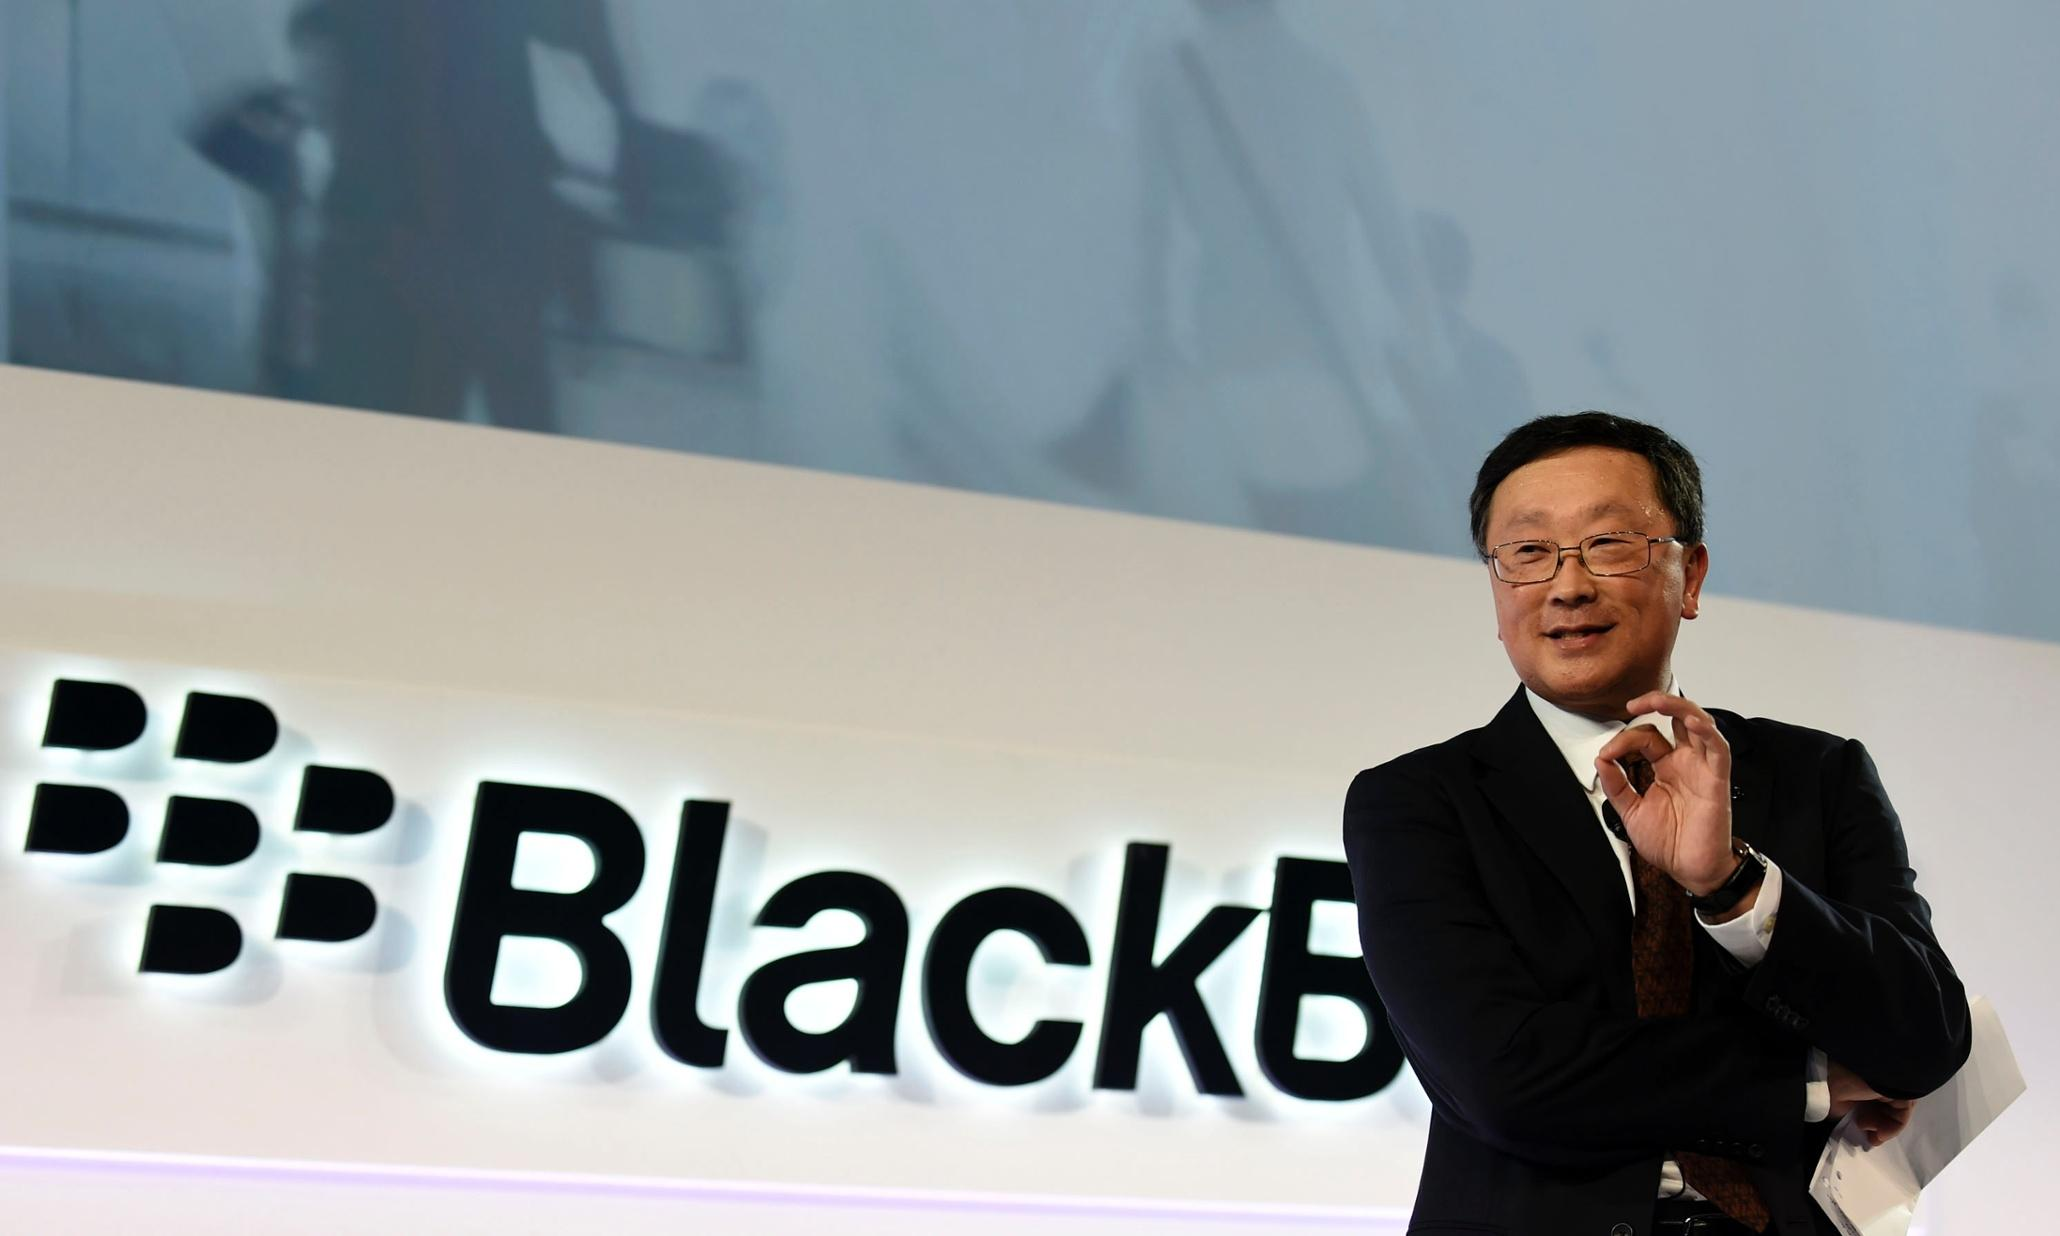 BlackBerry Limited (NASDAQ:BBRY) Sees Price Swing - Up $0.71